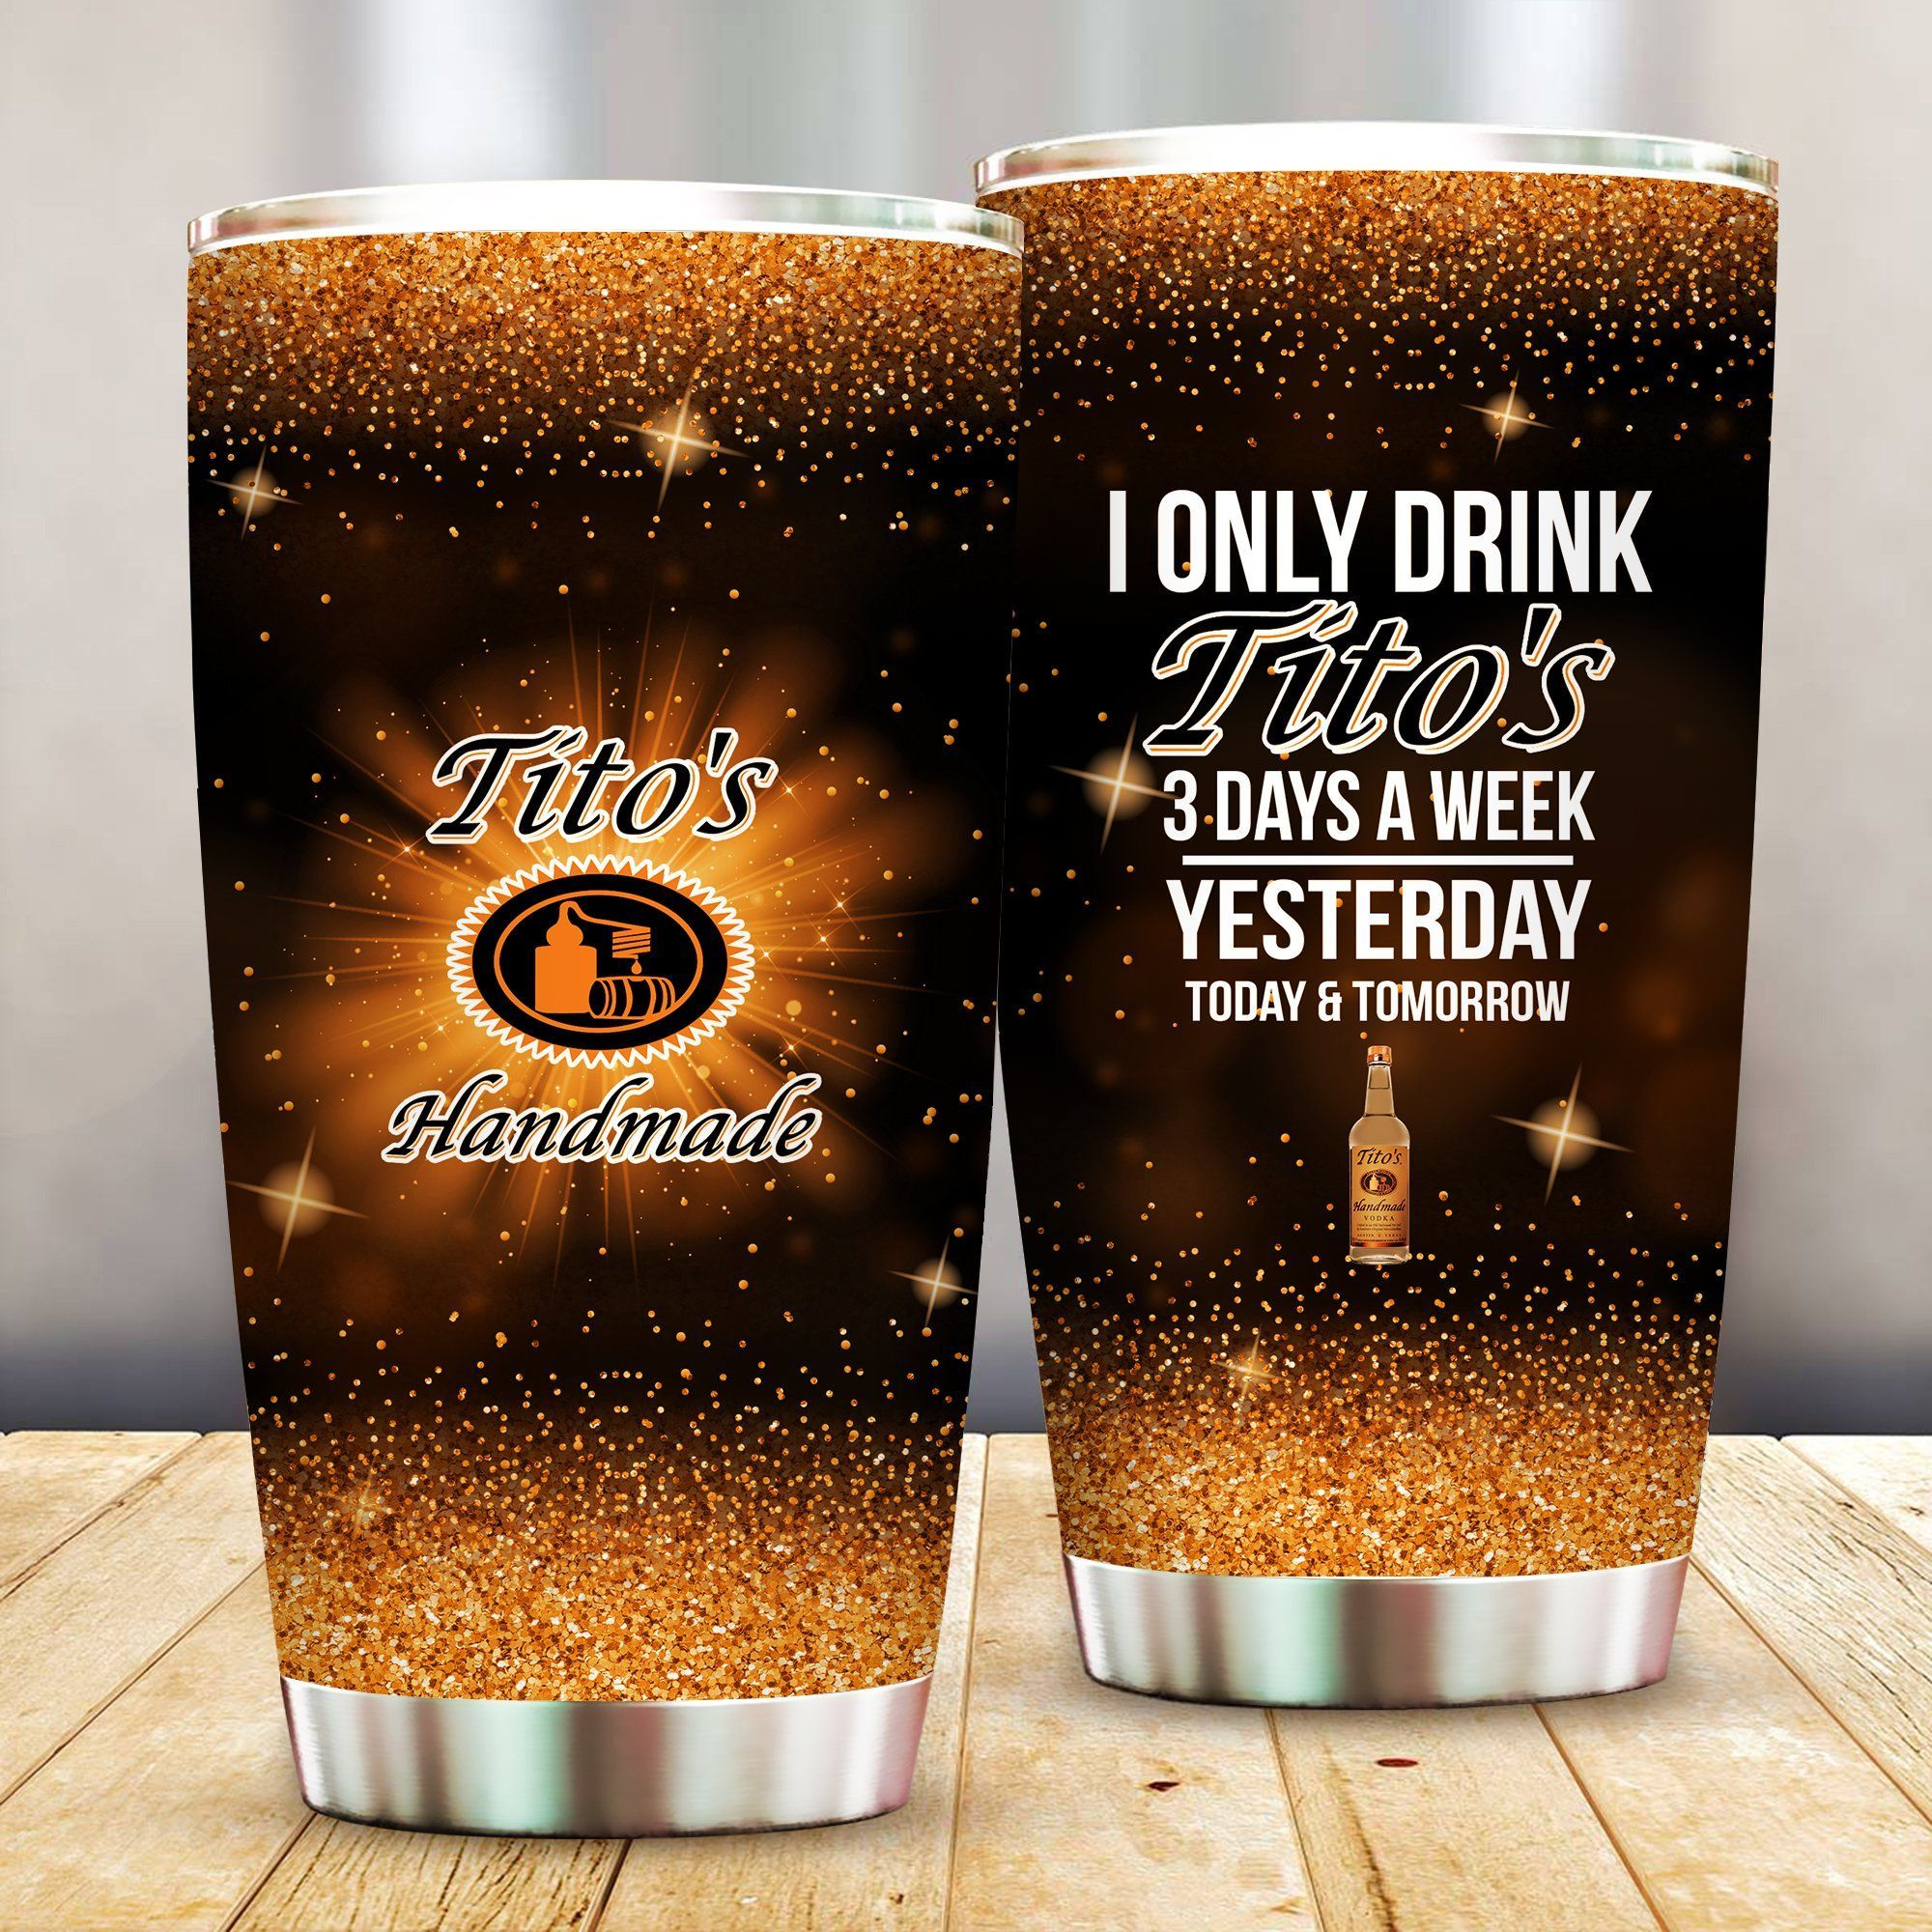 I Only Drink Tito's 3 Days A Week Yesterday Today and Tomorrow - Funny Customized Tumbler Cup Unisex Tshirt